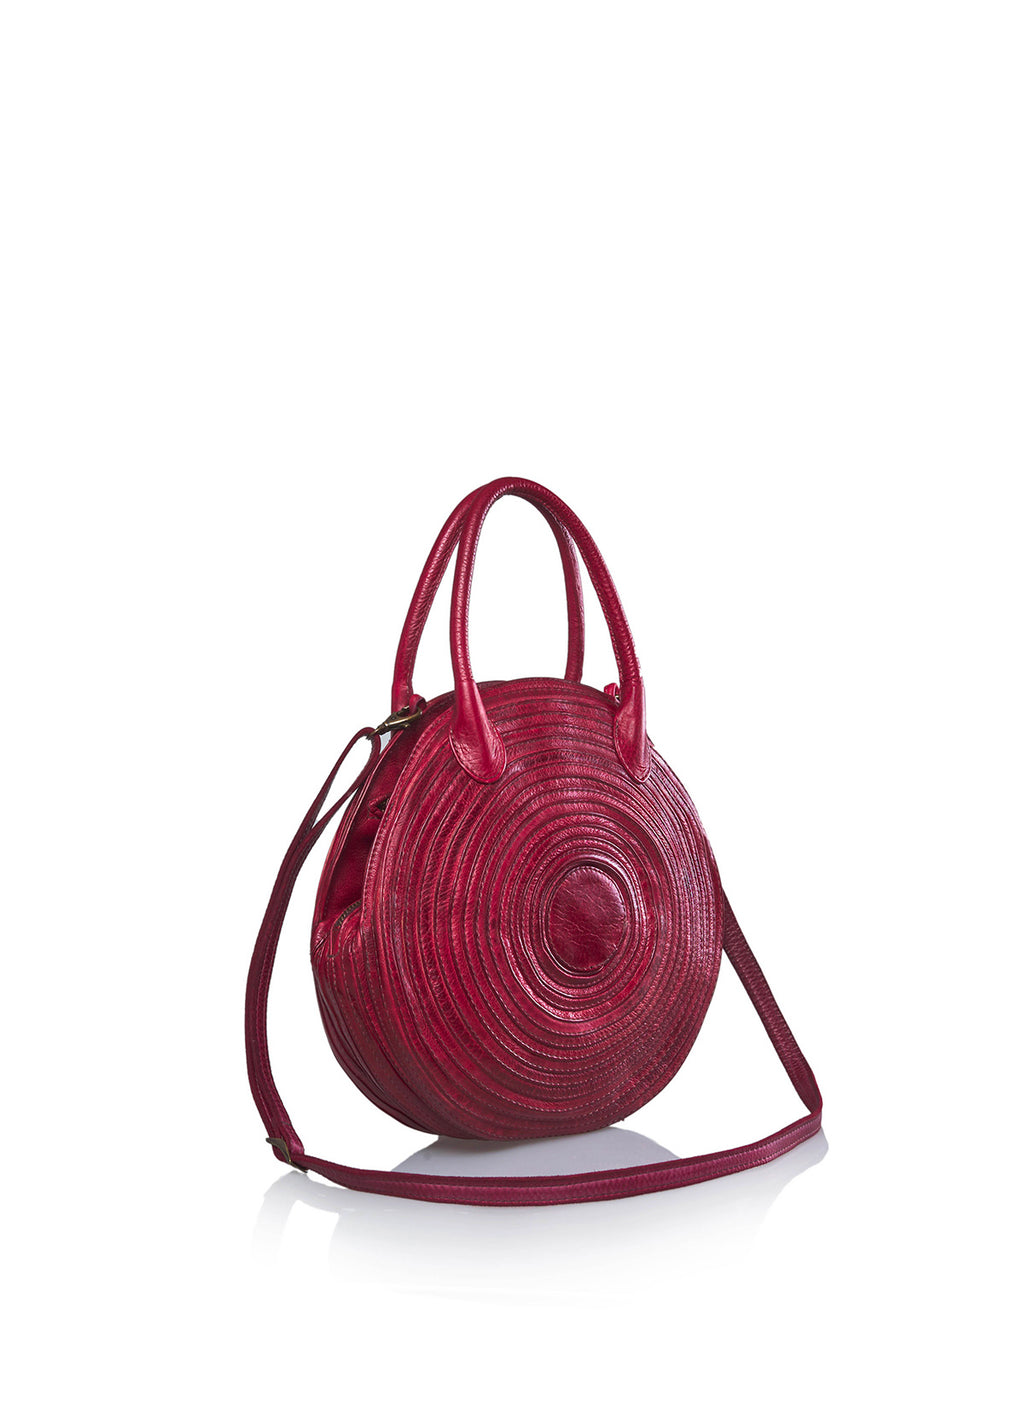 Bohk 465, shoulder bag - pelle di vitello, fodera in cotone, due tasche interne e chiusura con zip - vista laterale